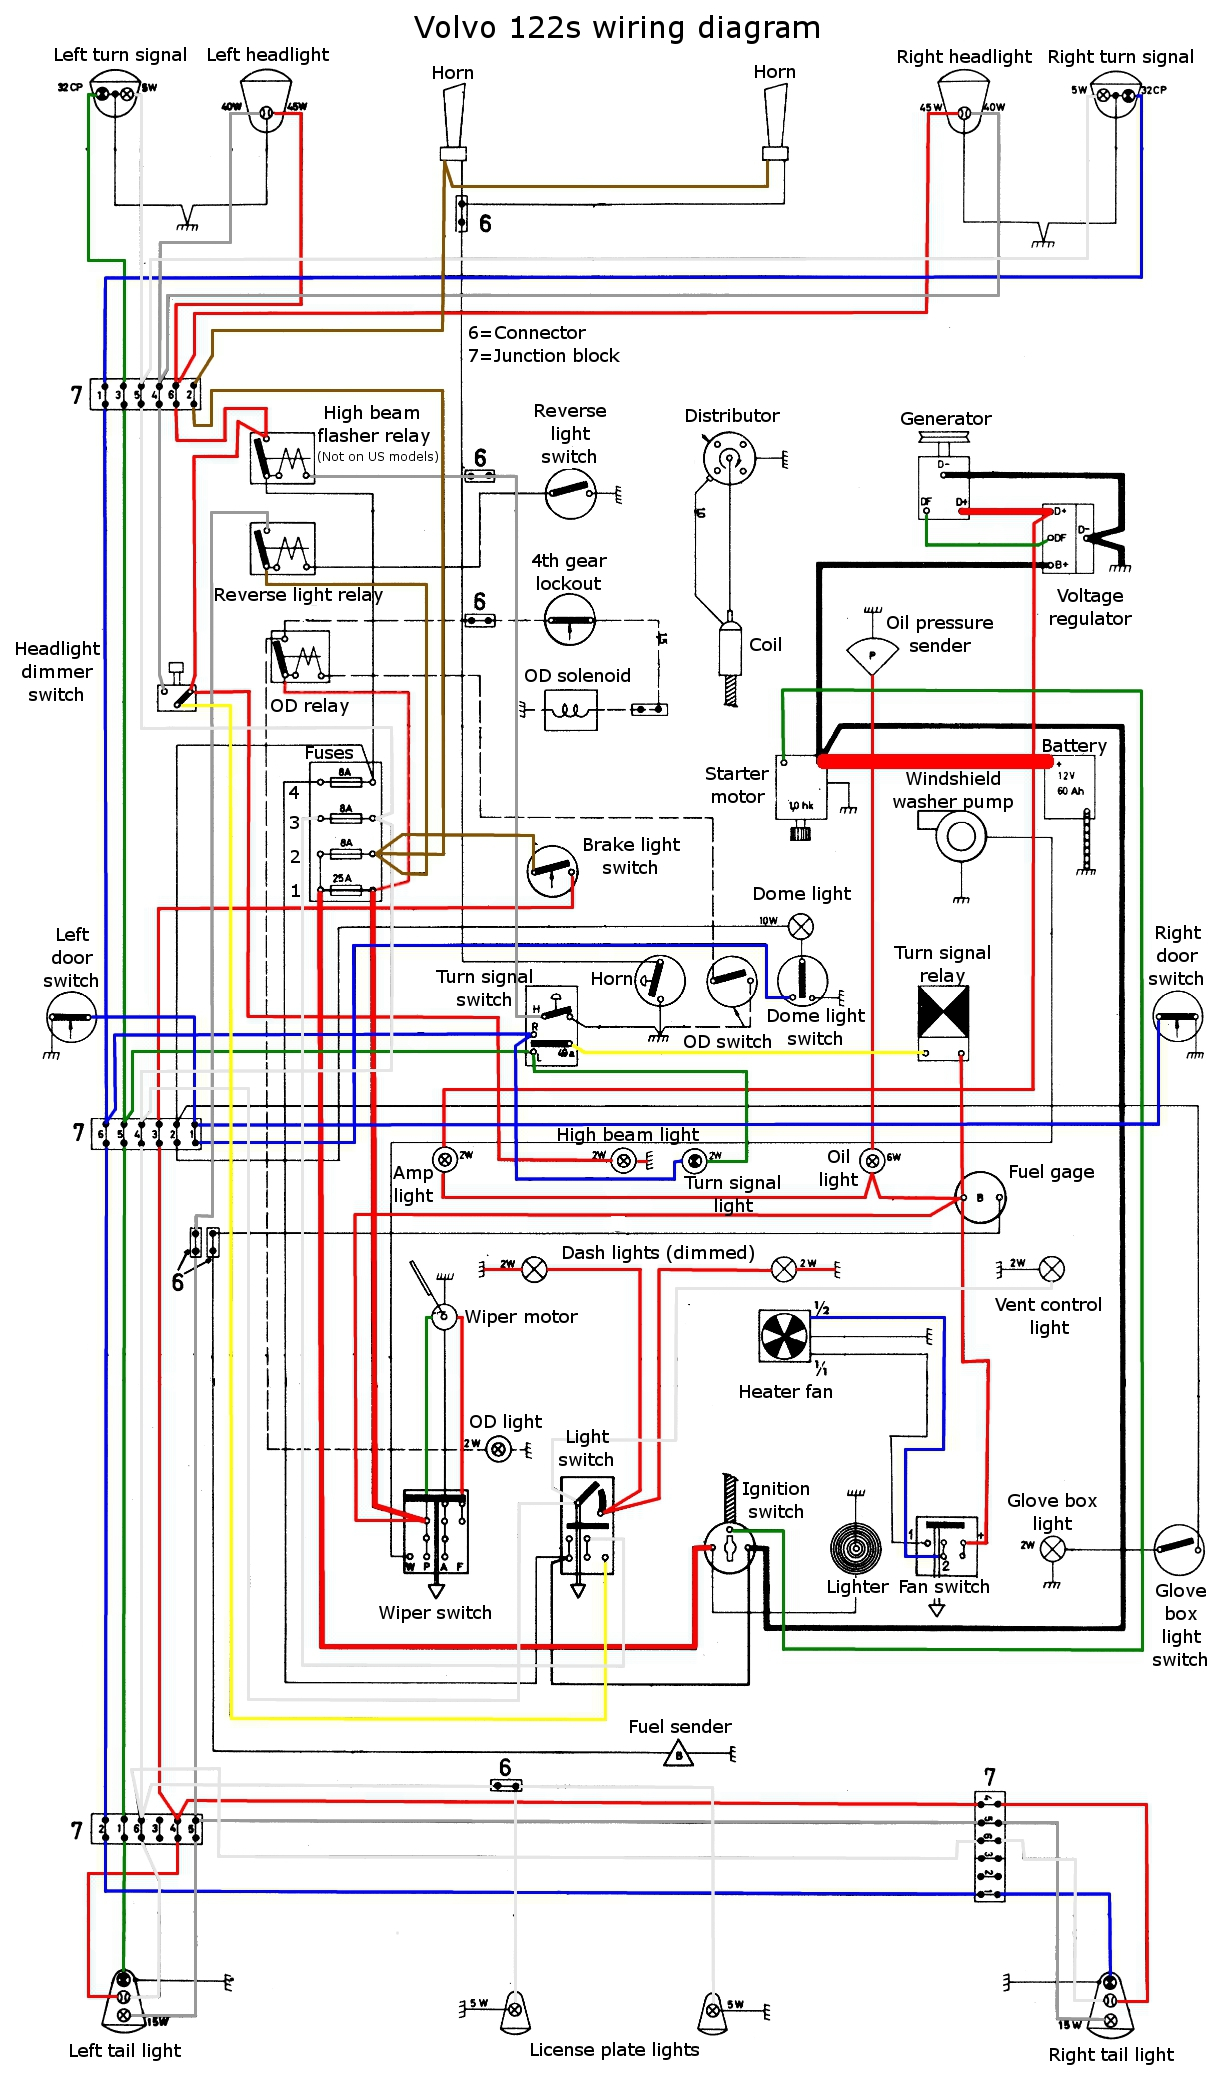 wiring diagram volvo amazon | www wiring diagram publicity -  www.marsilioshop.it  wiring diagram library